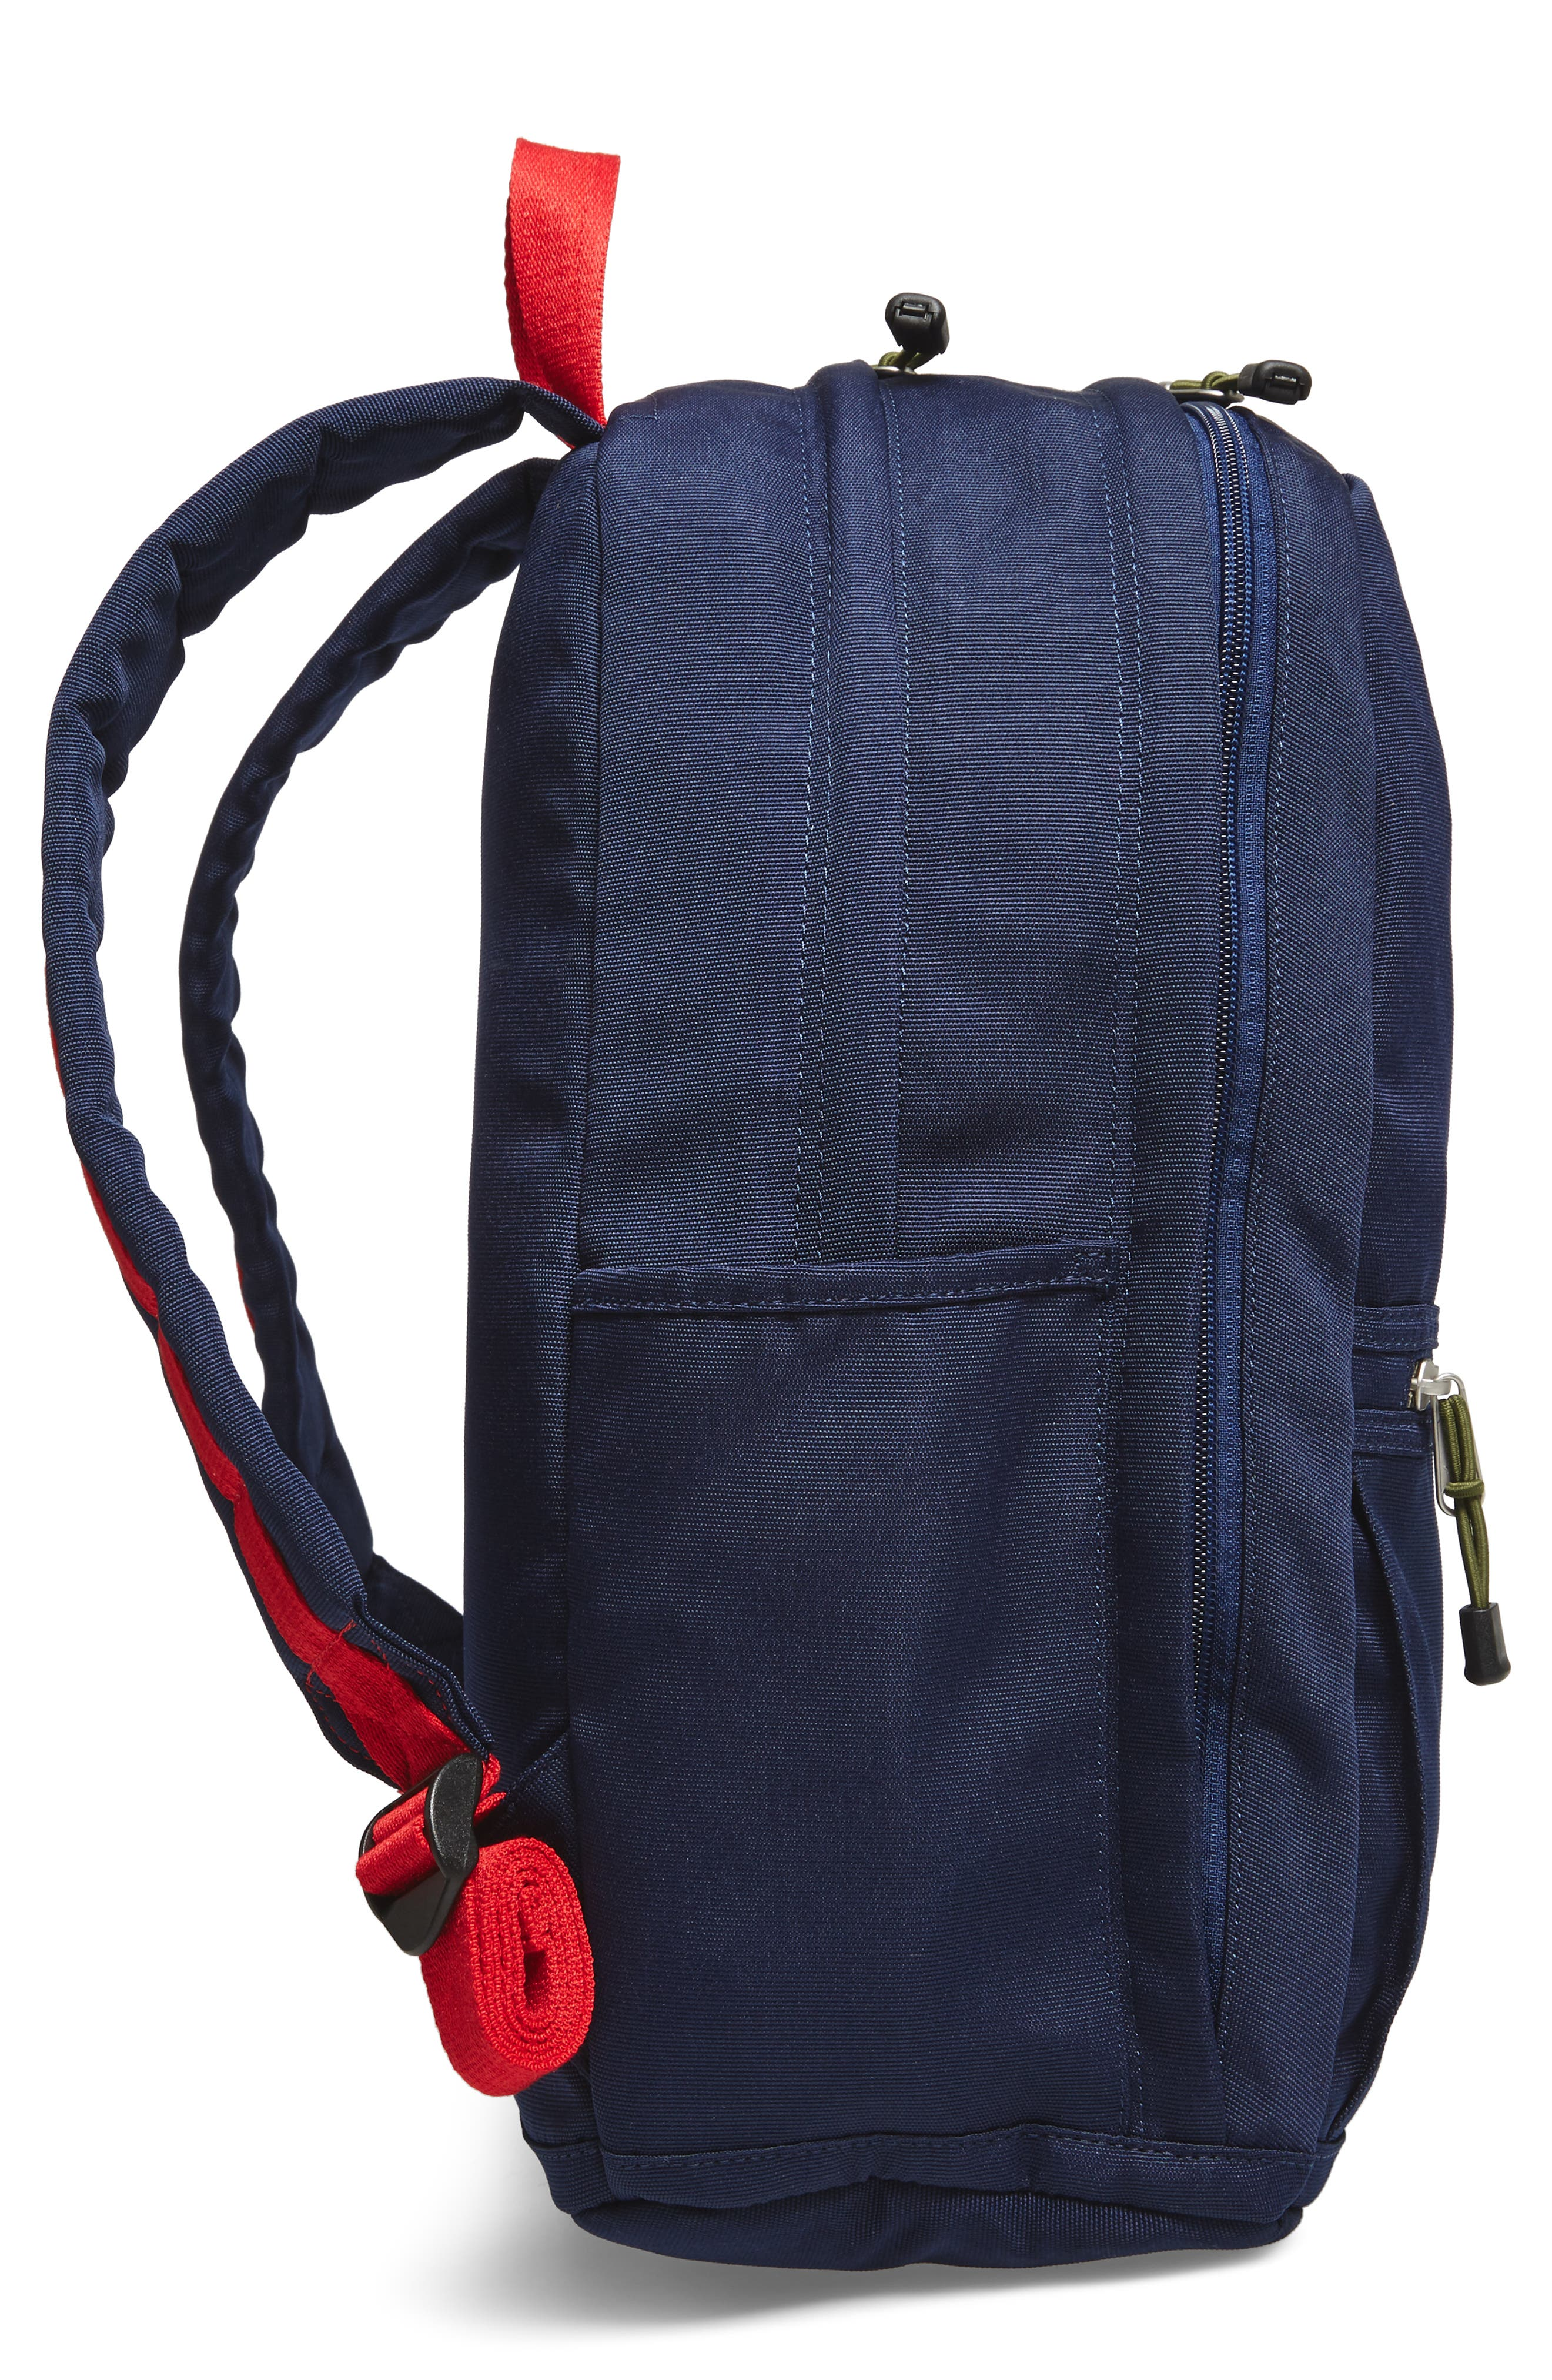 Williamsburg Bedford Backpack,                             Alternate thumbnail 5, color,                             Navy